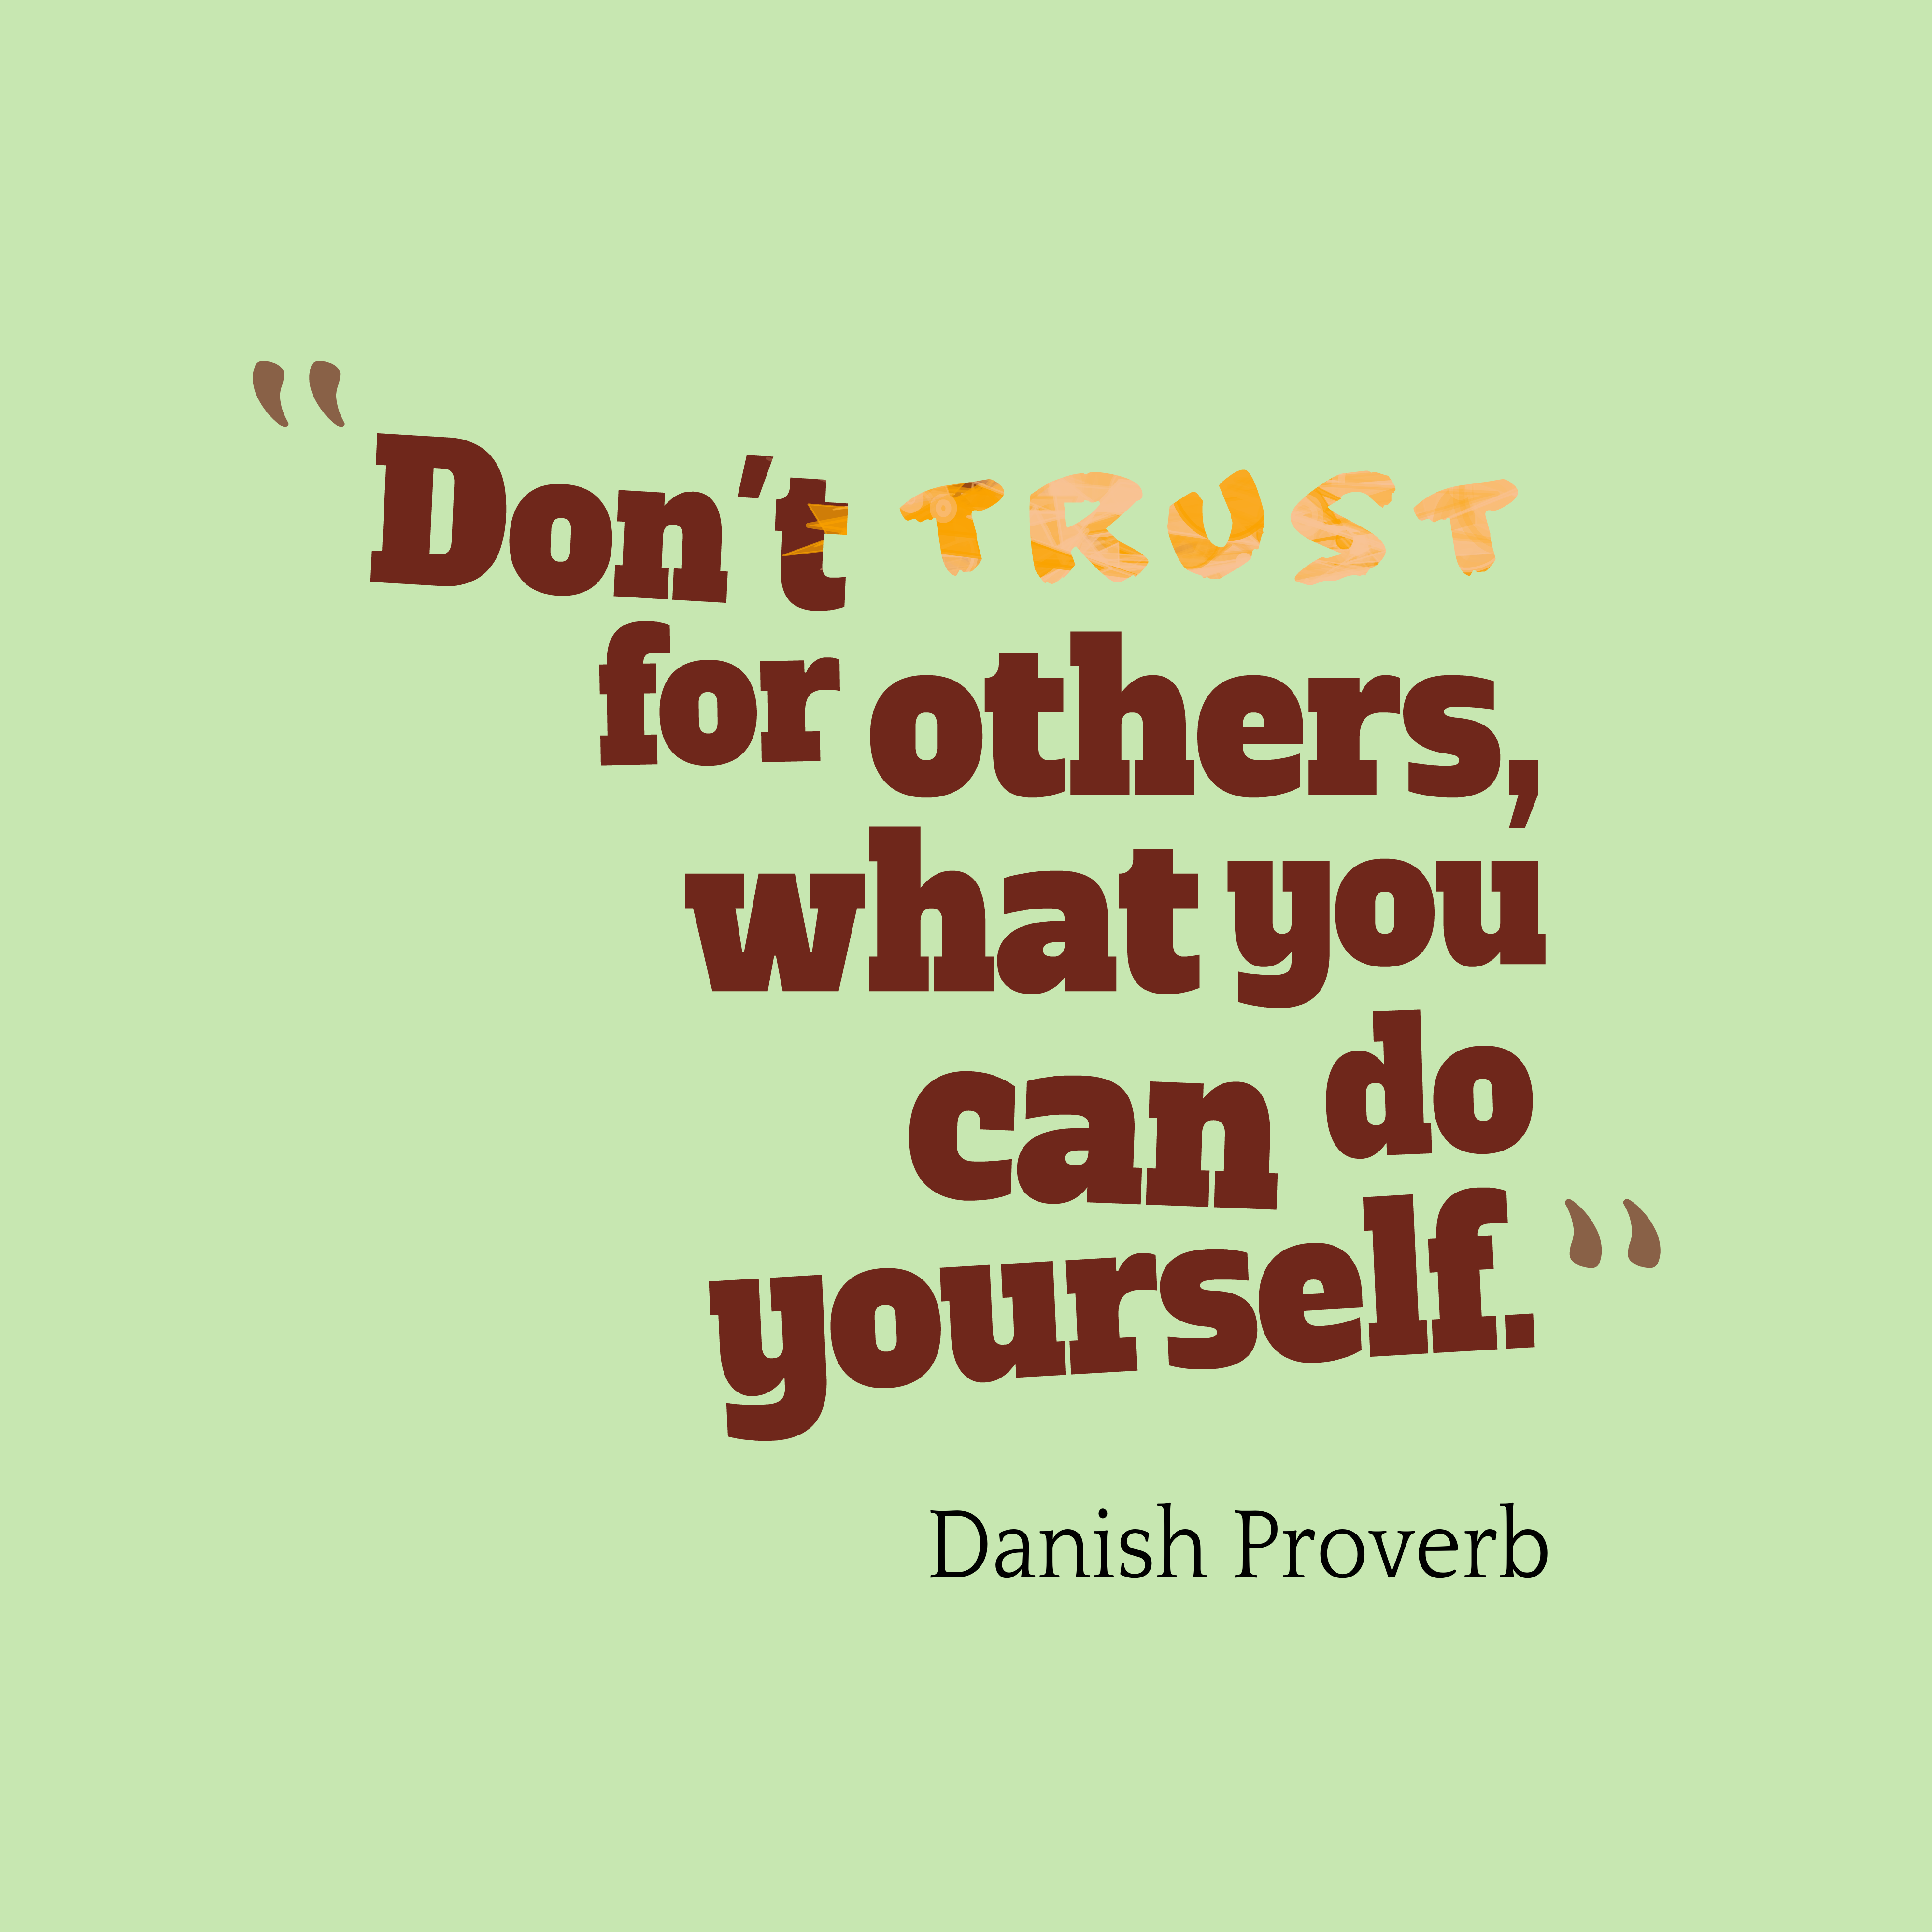 Quotes image of Don't trust for others, what you can do yourself.